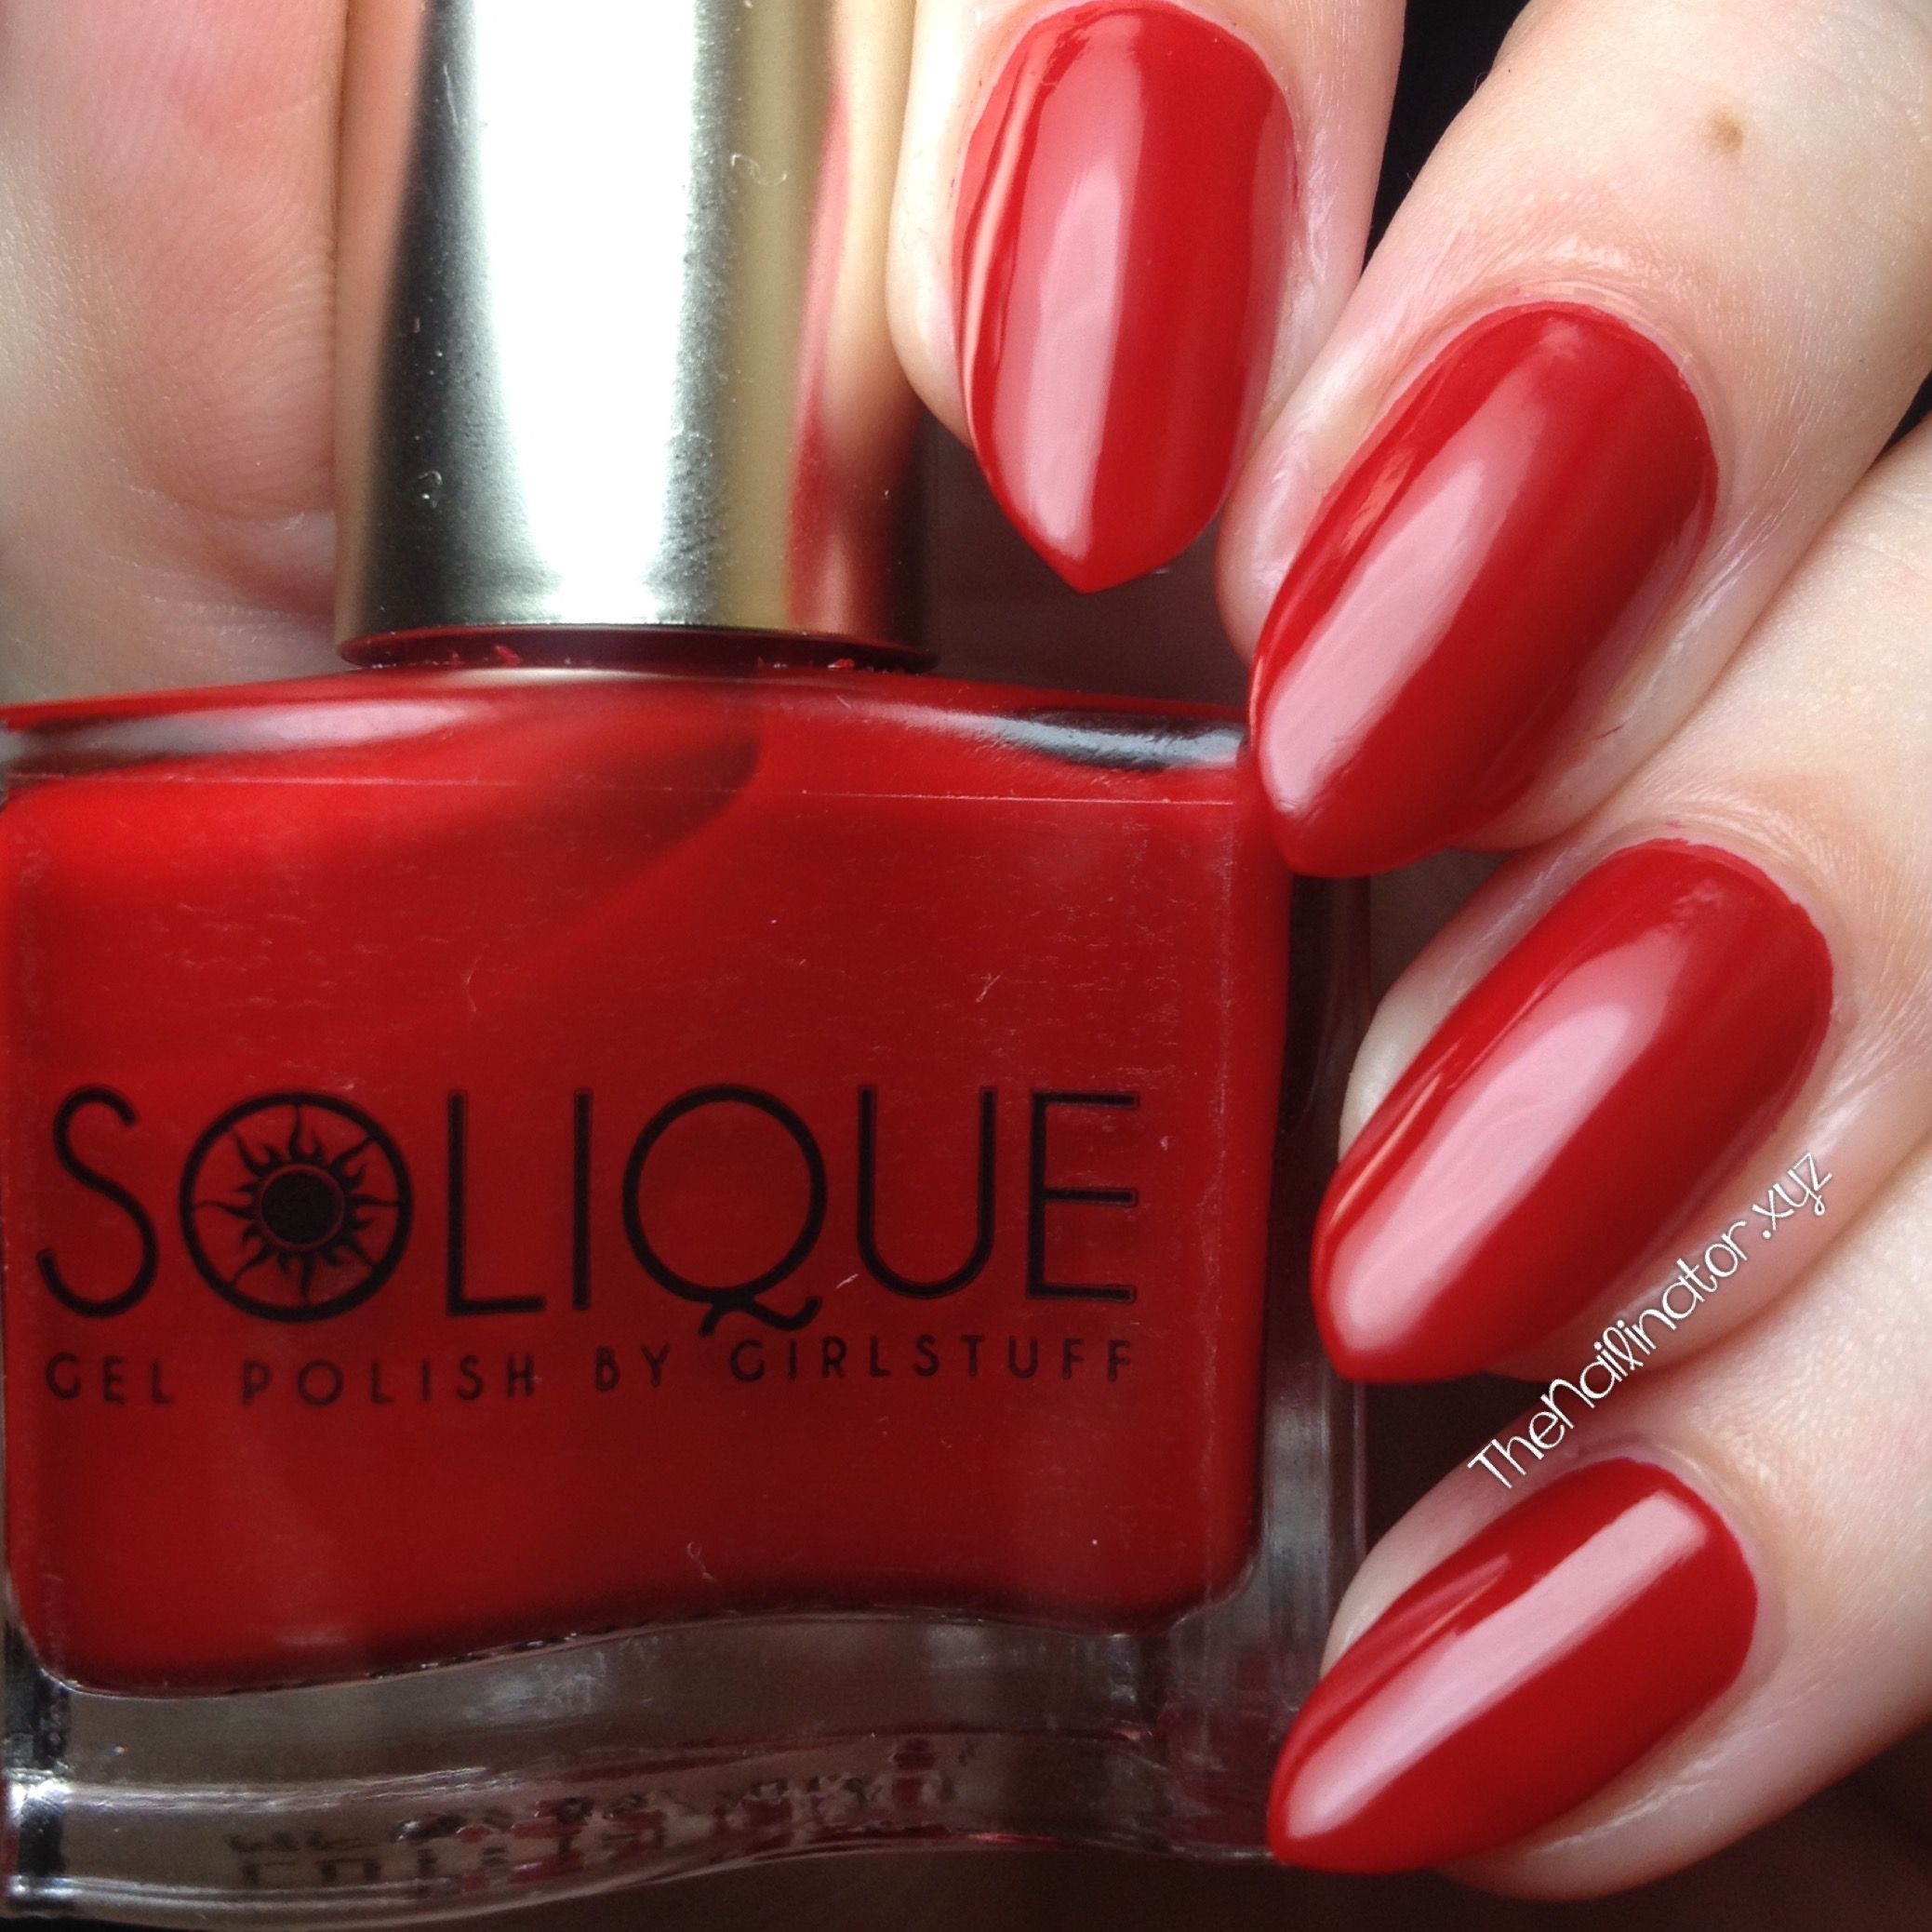 Girlstuff Solique Gel Collection Swatches And Review The Nailinator Nail Polish My Nails Gel Polish